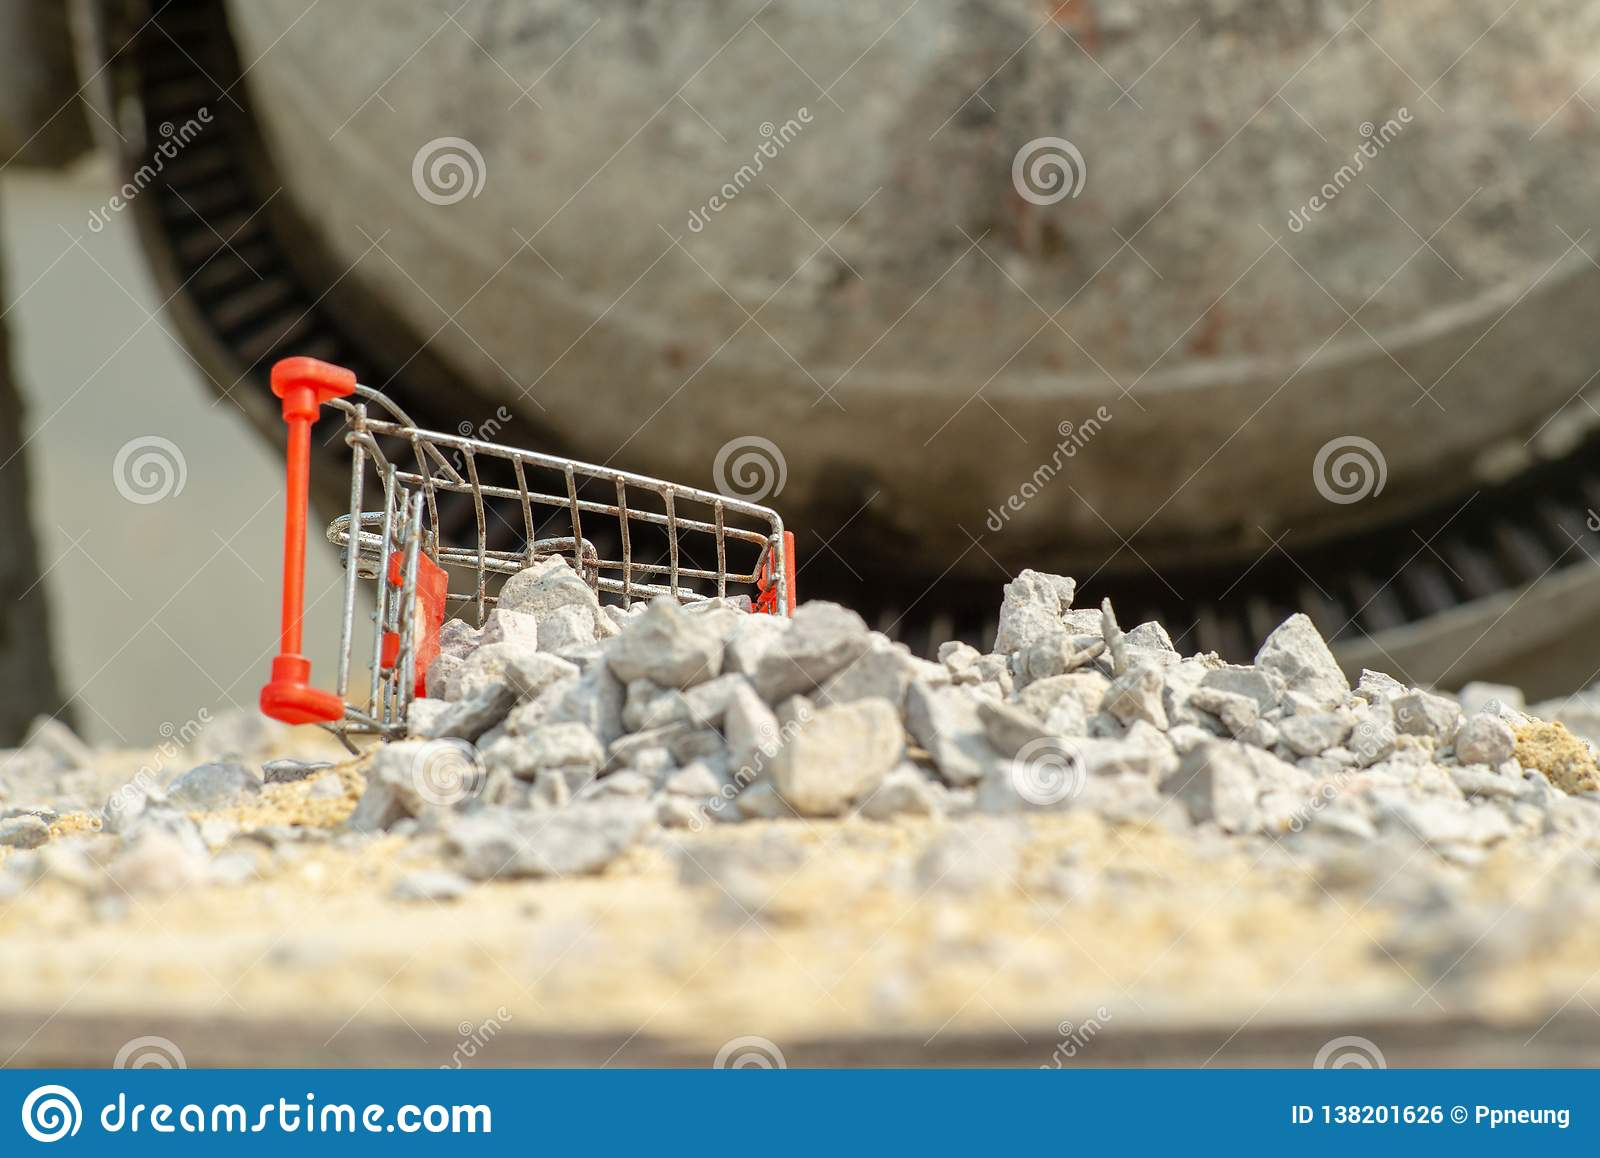 Selective focus on shopping trolley falling on the pile of crushed stone at the construction site